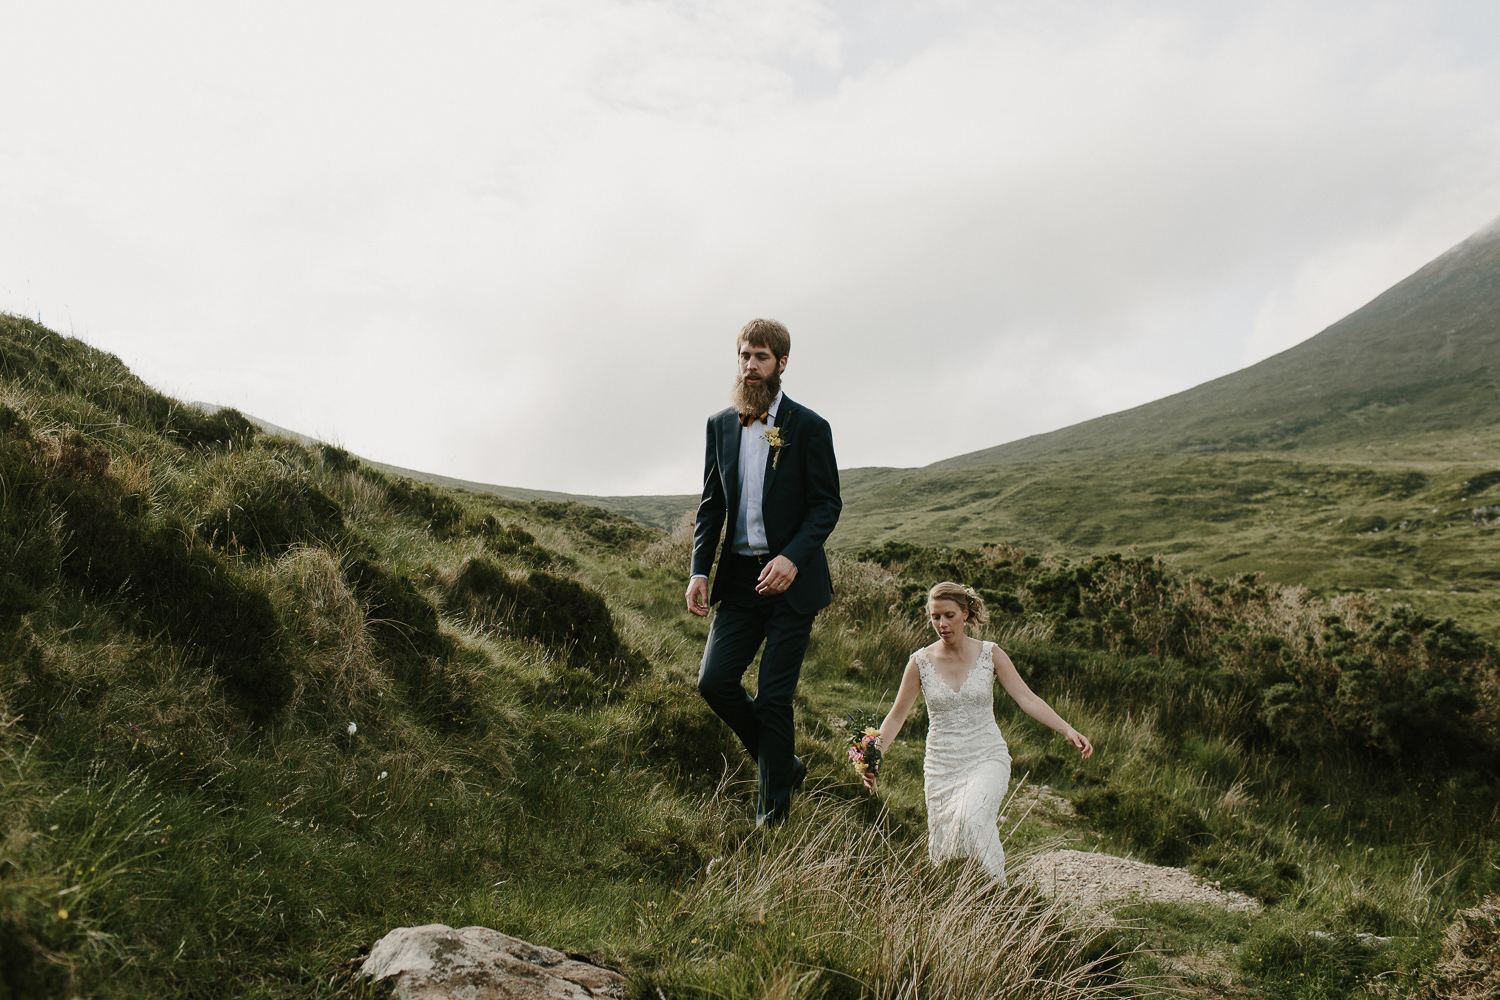 Achill-Island-Adventure-Wedding-Photographer-406.jpg